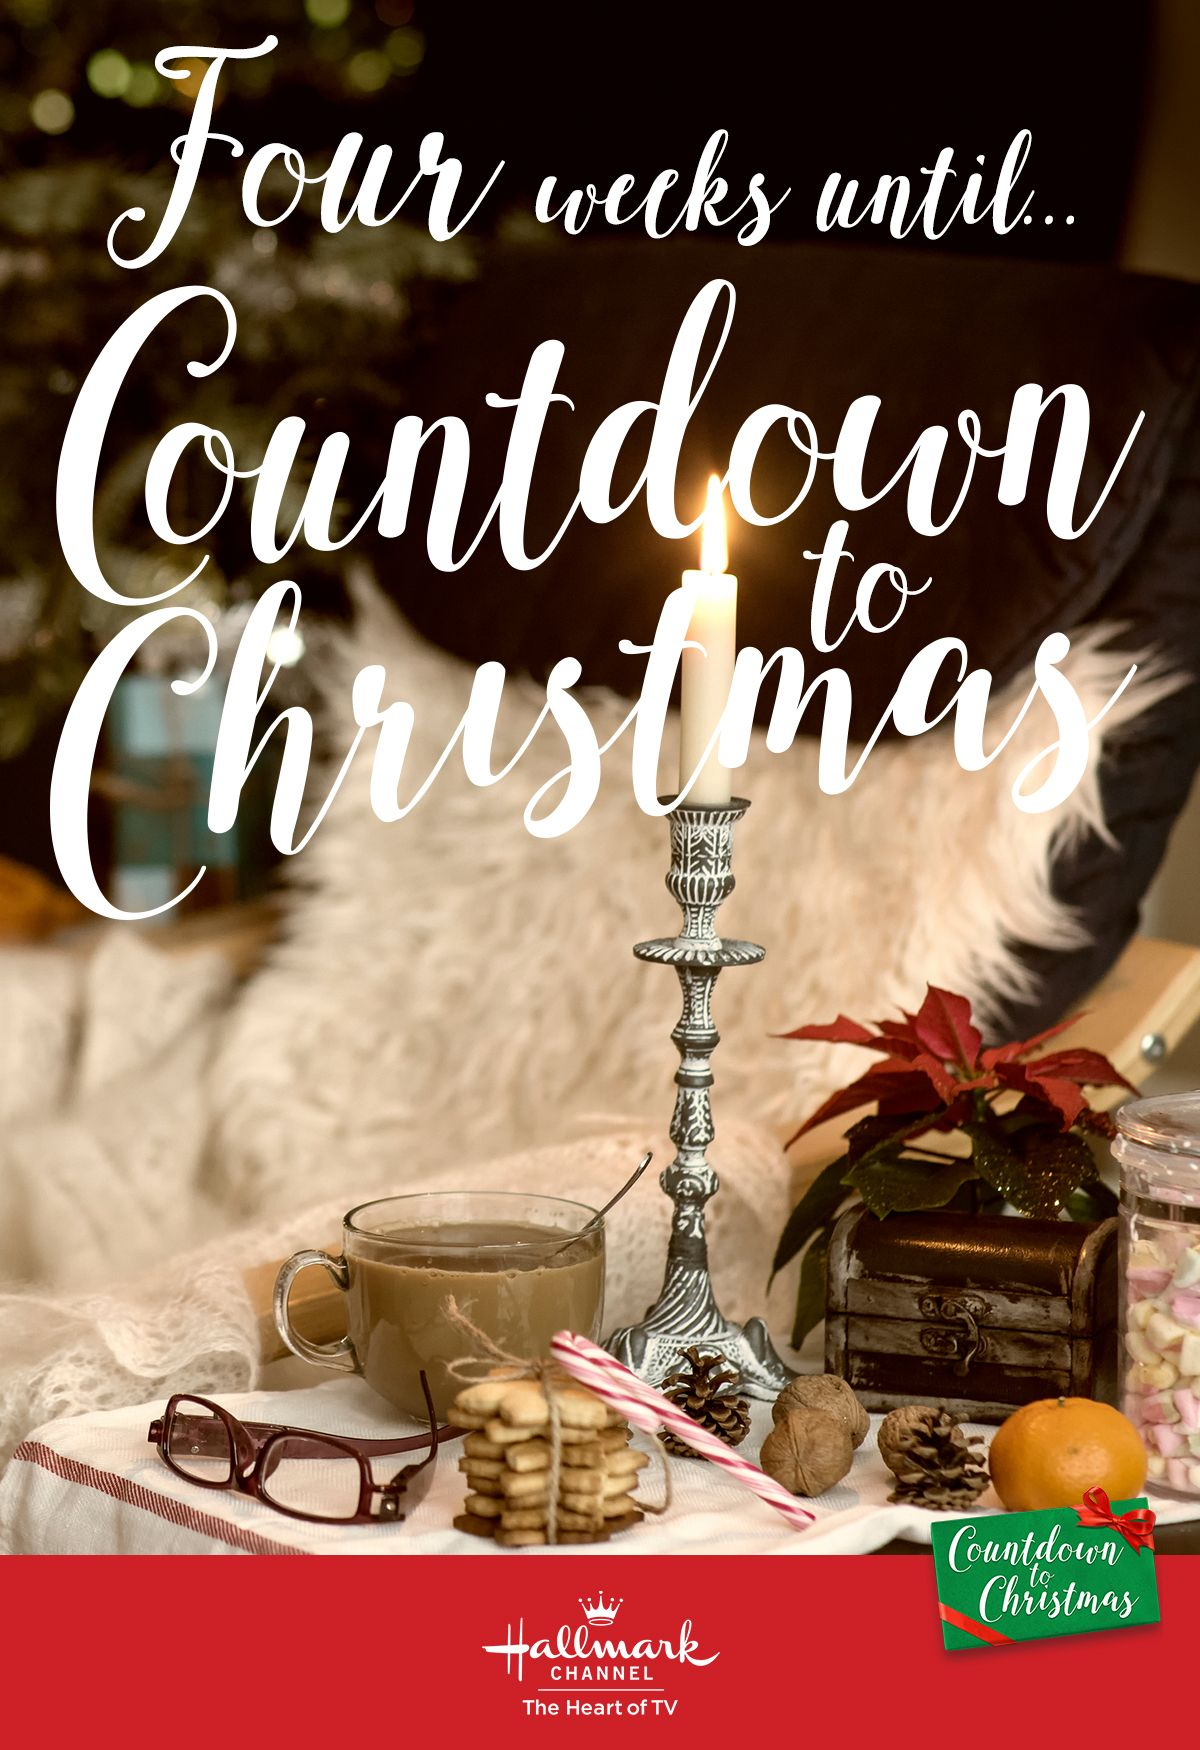 Octiber 26 2020 Countdown To Christmas Schedule Four weeks until Countdown to Christmas! Are you ready for 22 new